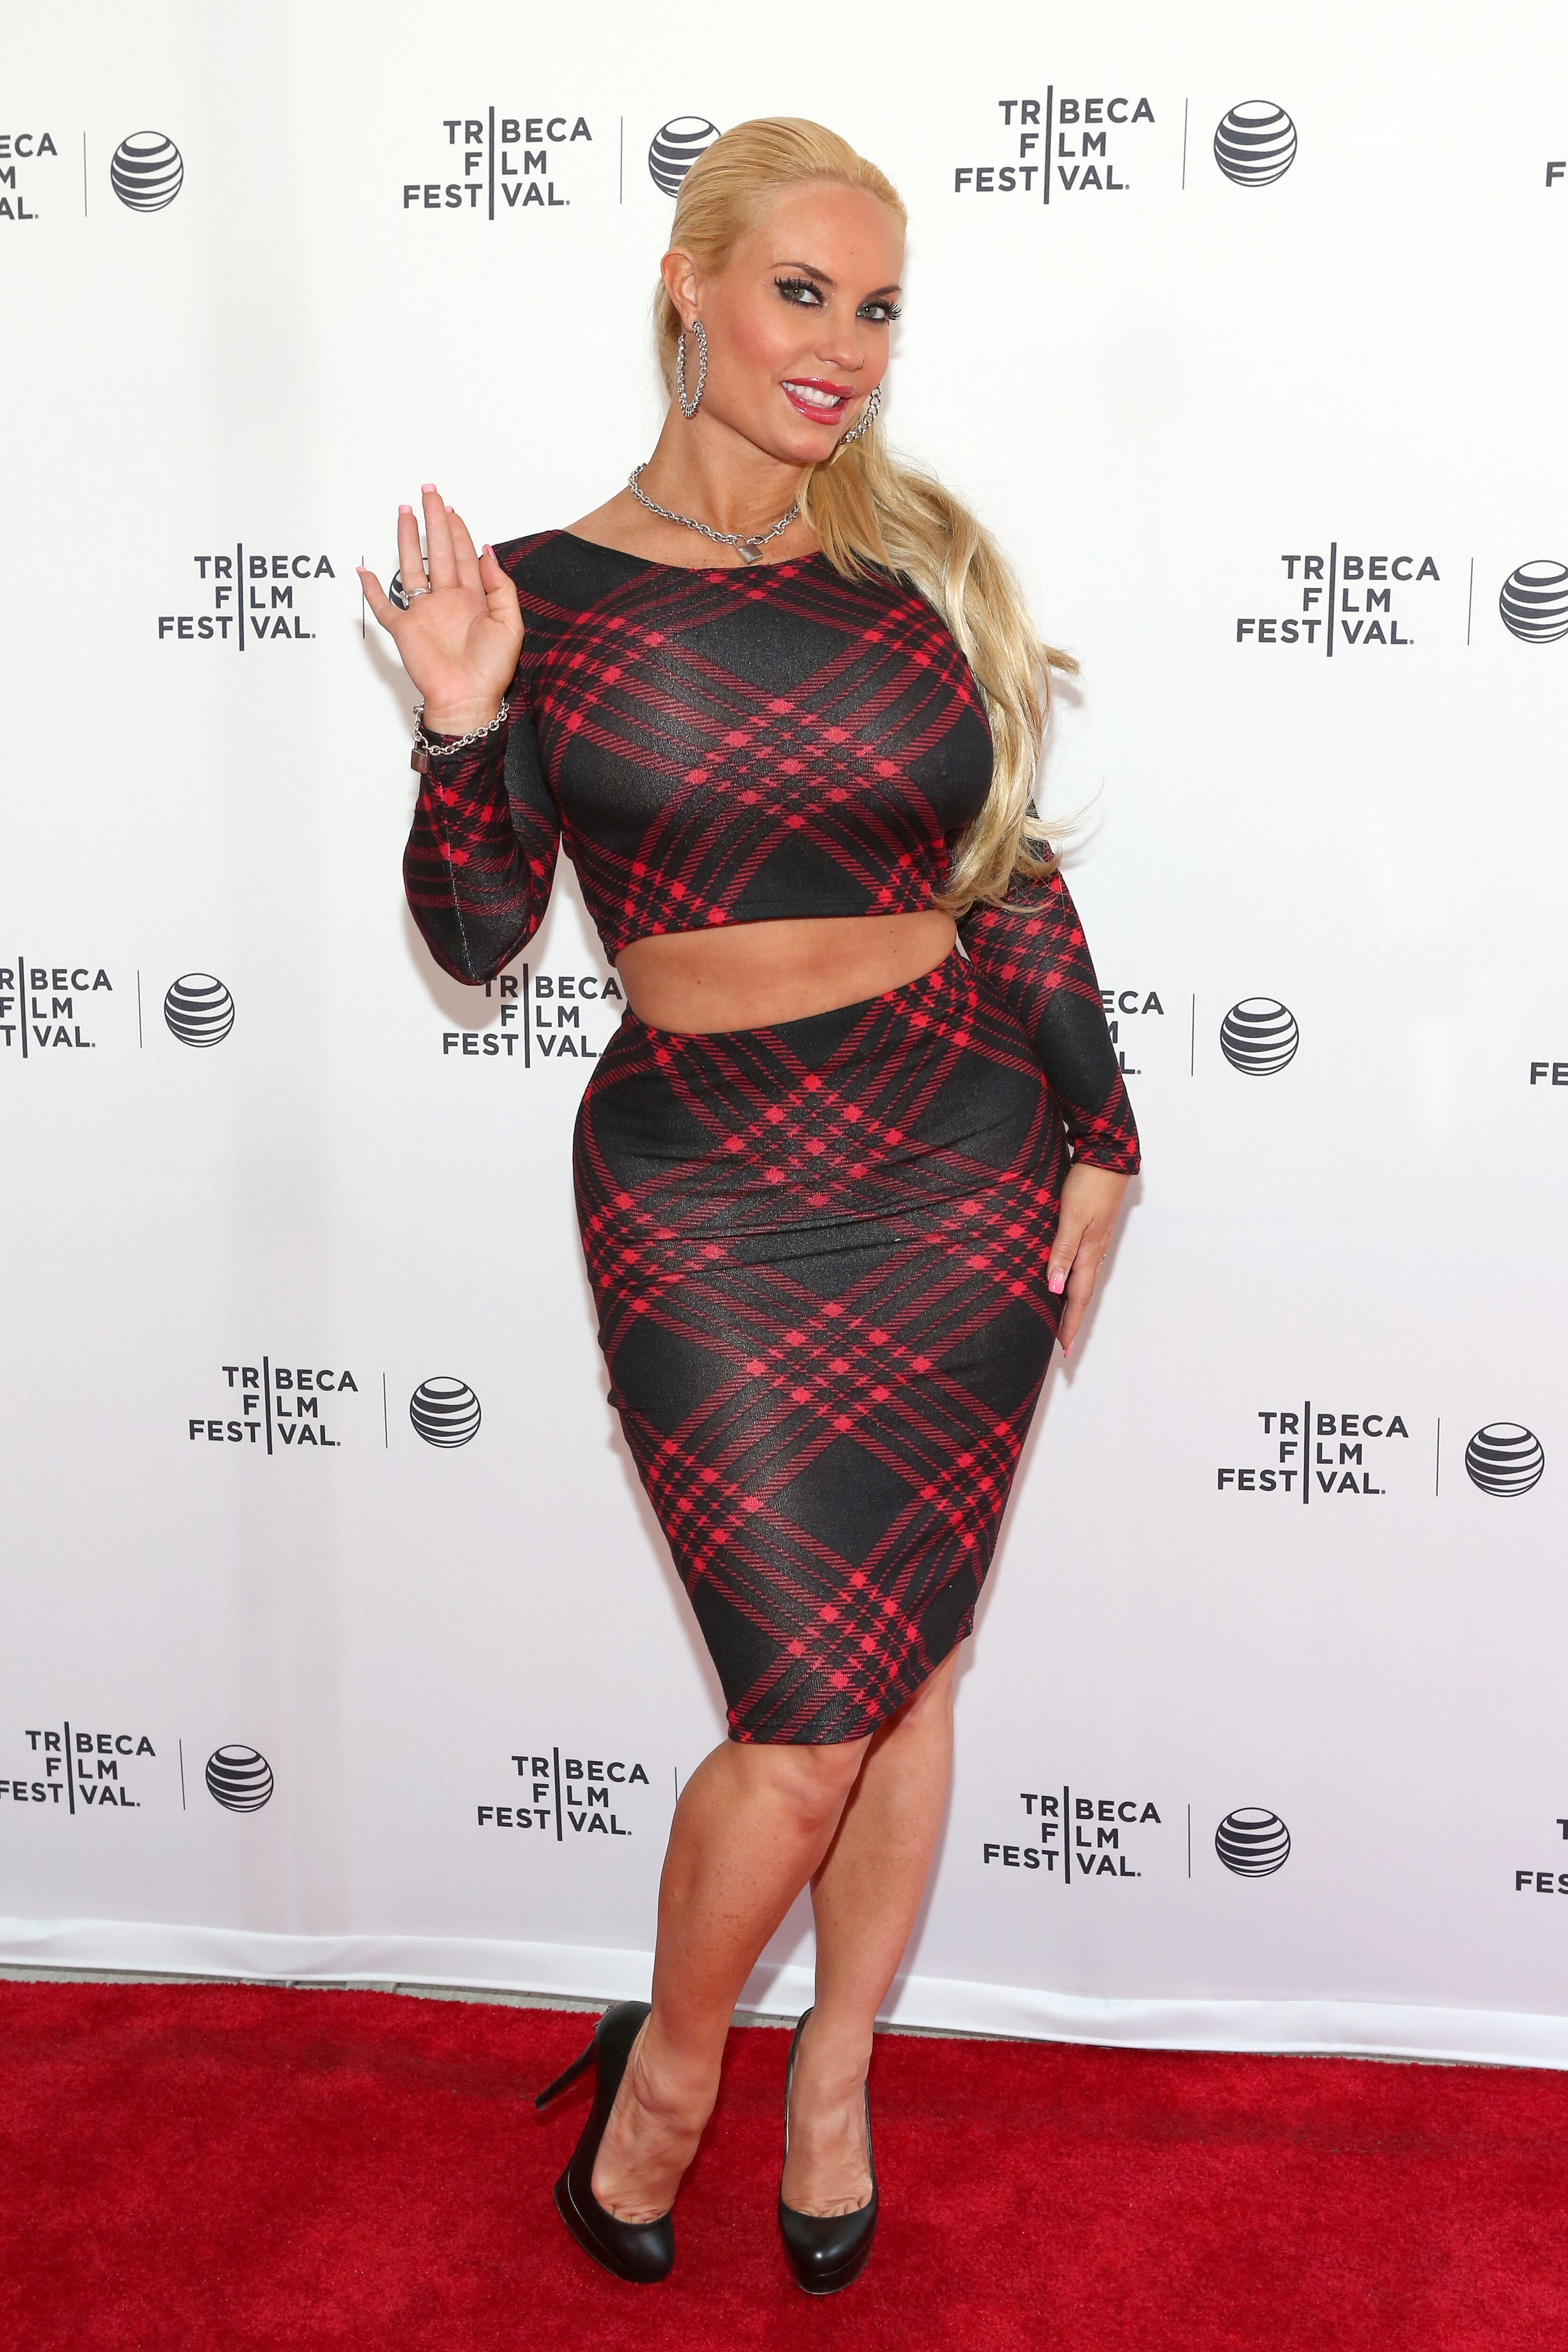 """TV Personality Coco Austin attends Tribeca Talks: After the Movie: """"Champs"""" during the 2014 Tribeca Film Festival at the SVA Theater on April 19, 2014 in New York City 